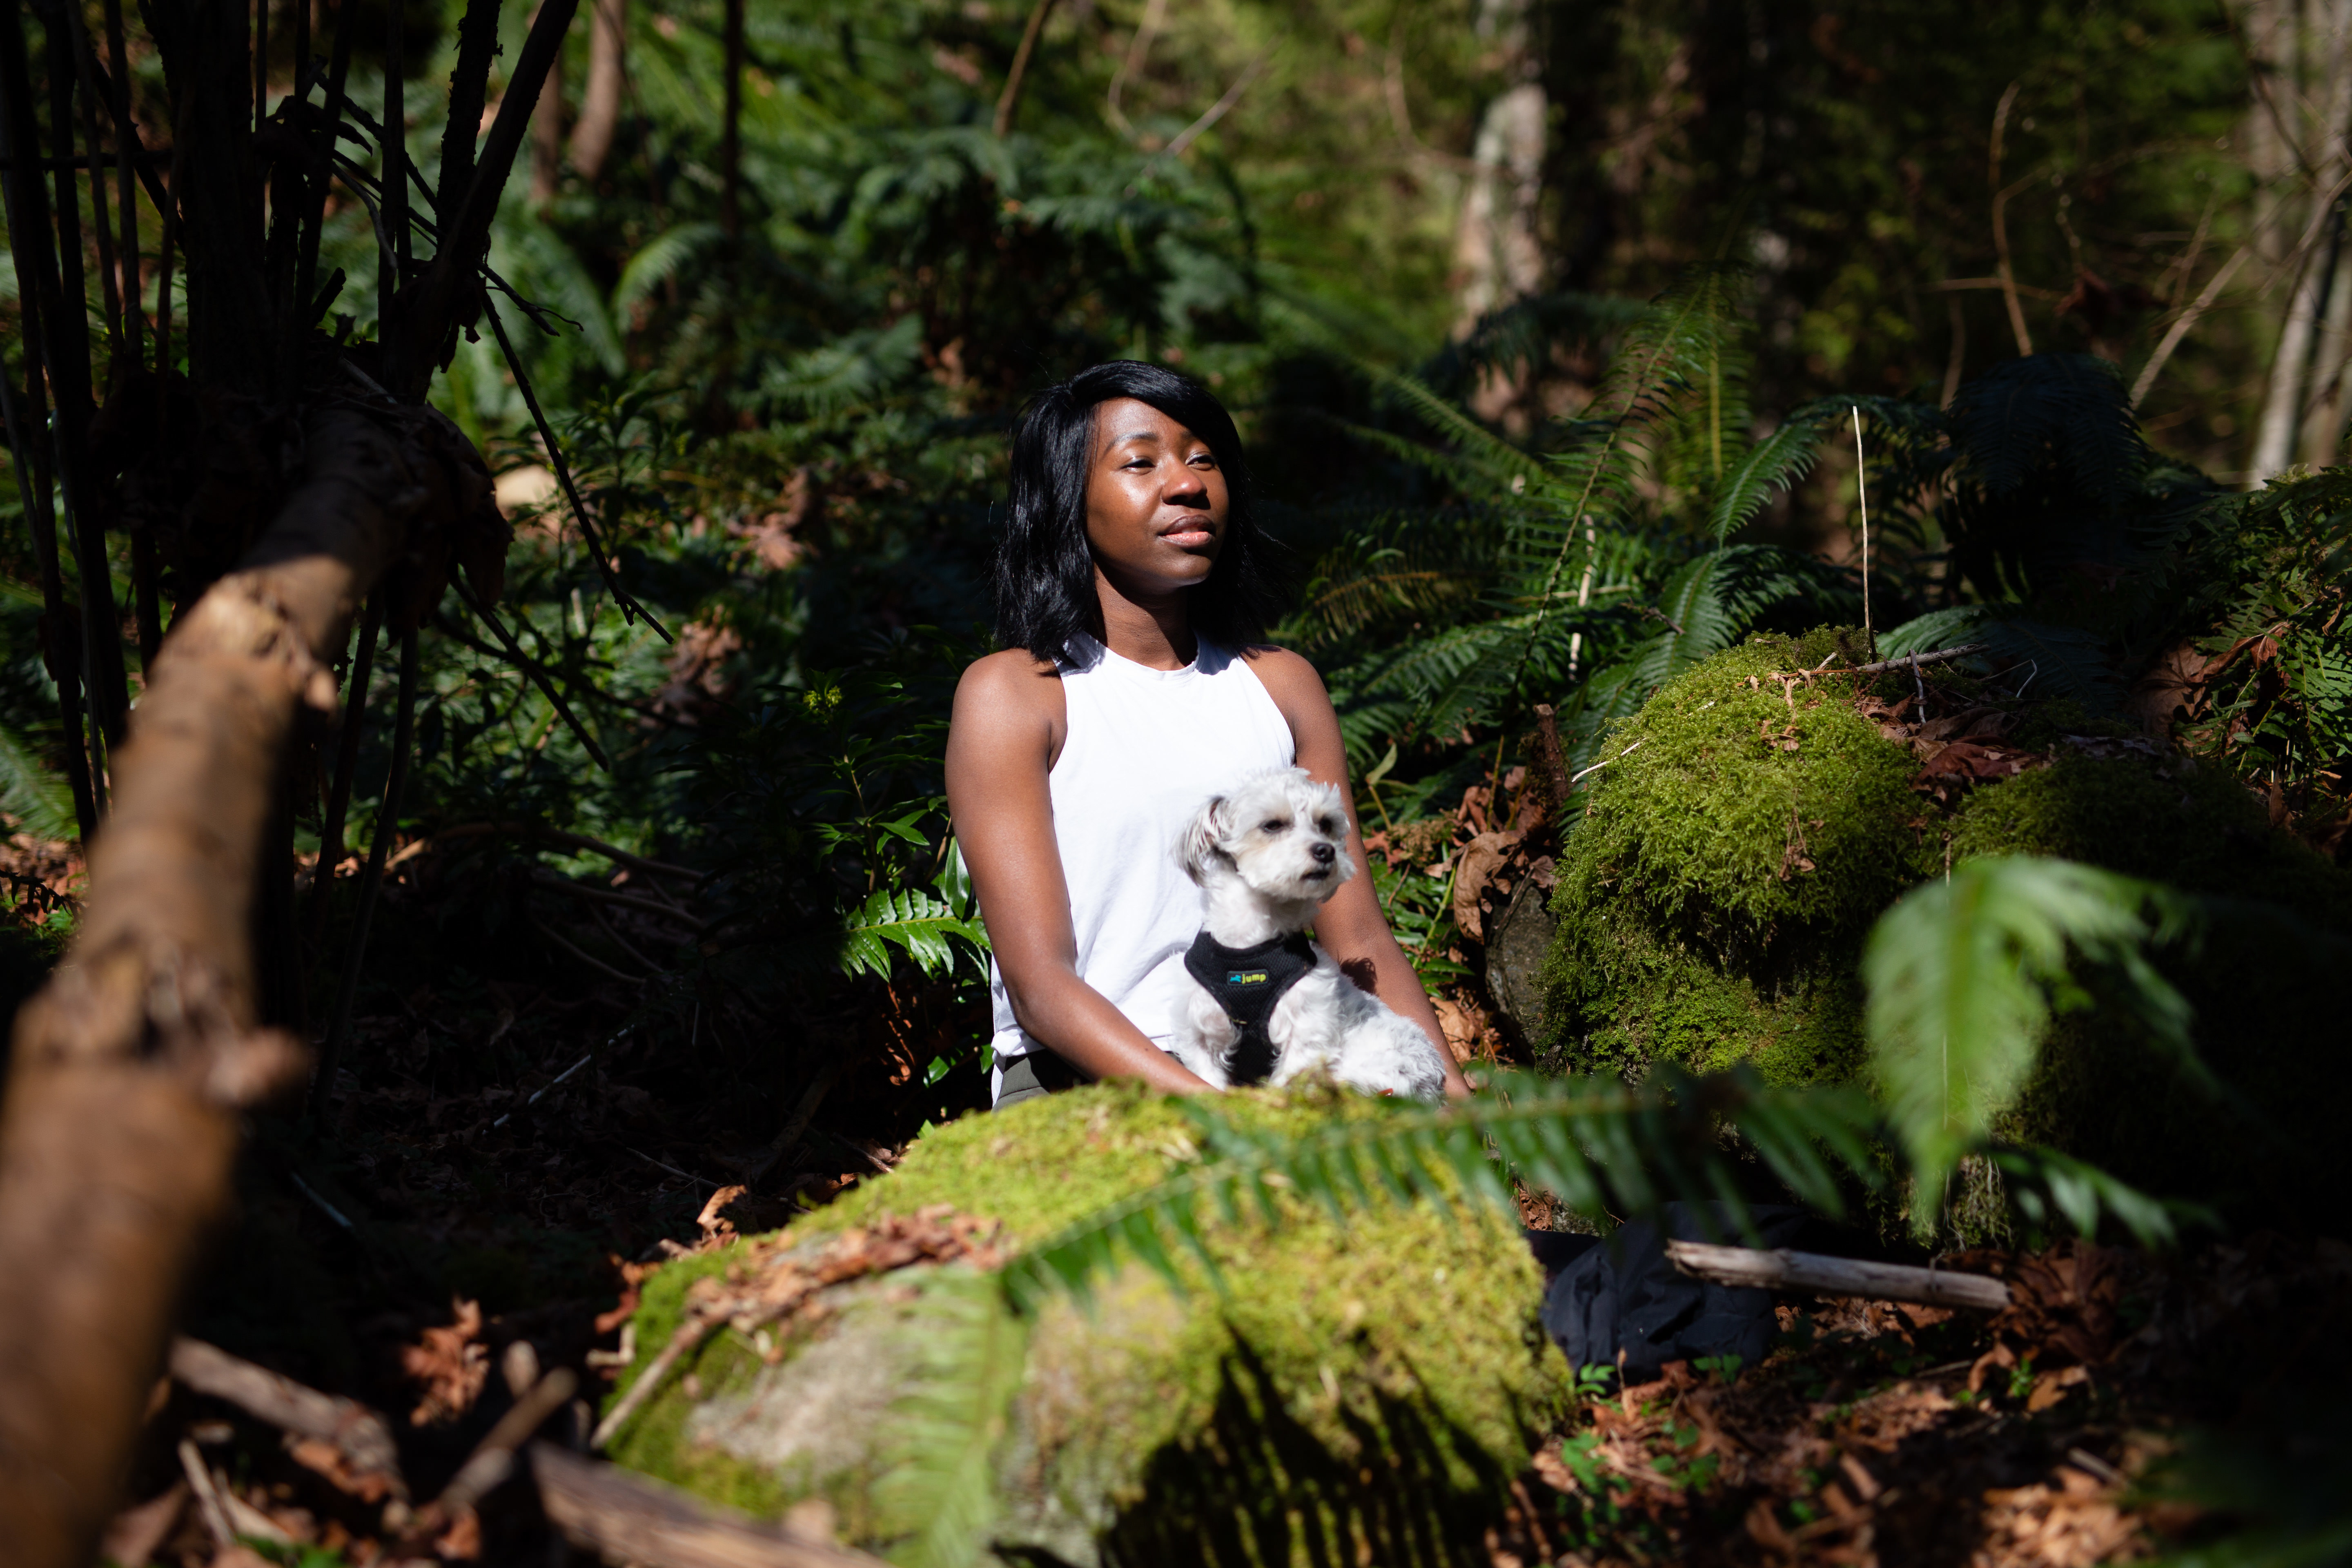 Nkomo meditates in the woods with her dog Hobbs. The forest is nice, but she says you can meditate anywhere.